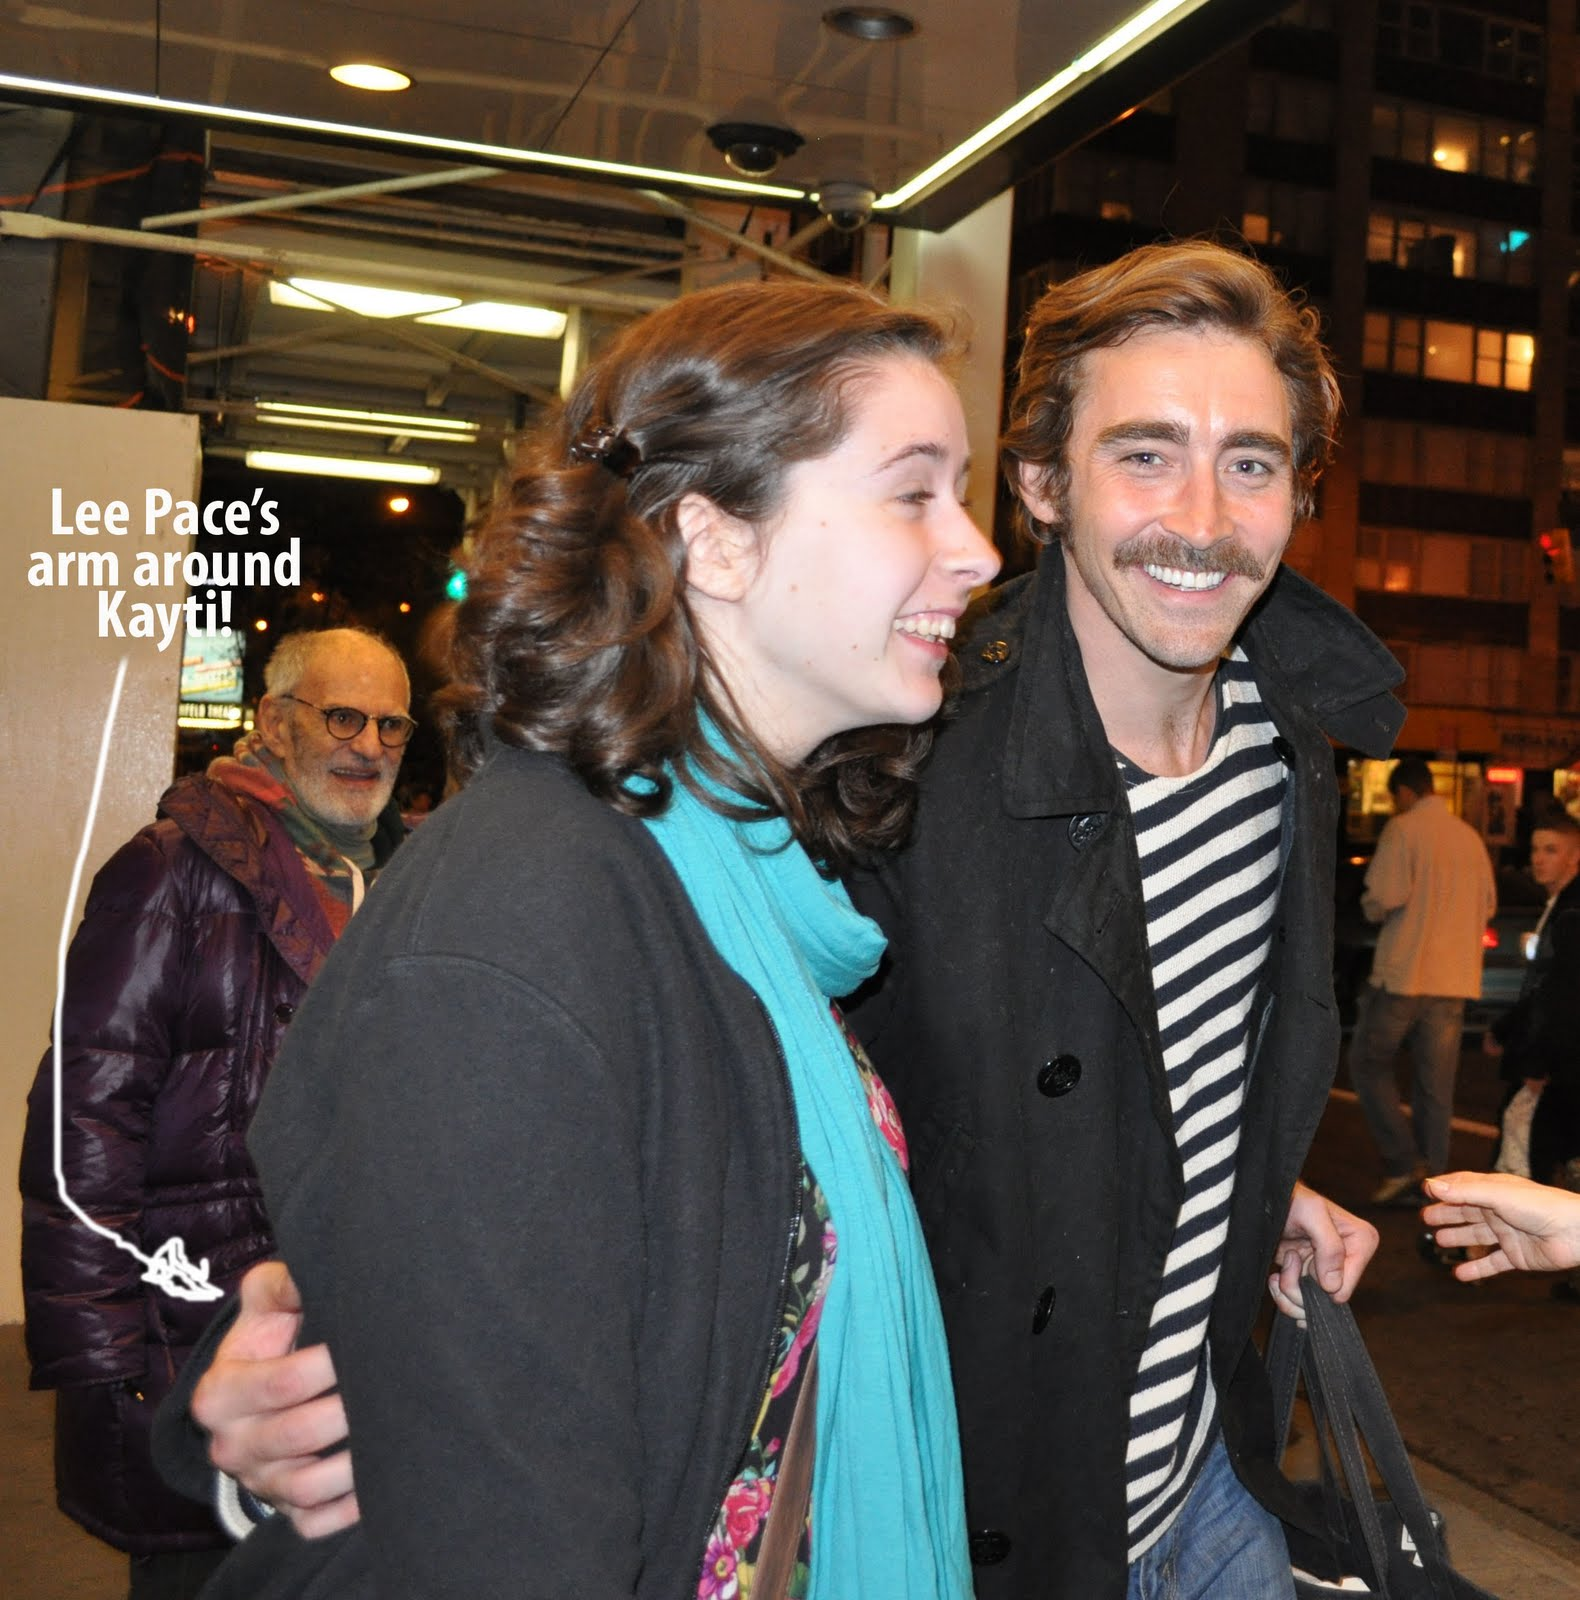 Lee pace dating in Brisbane